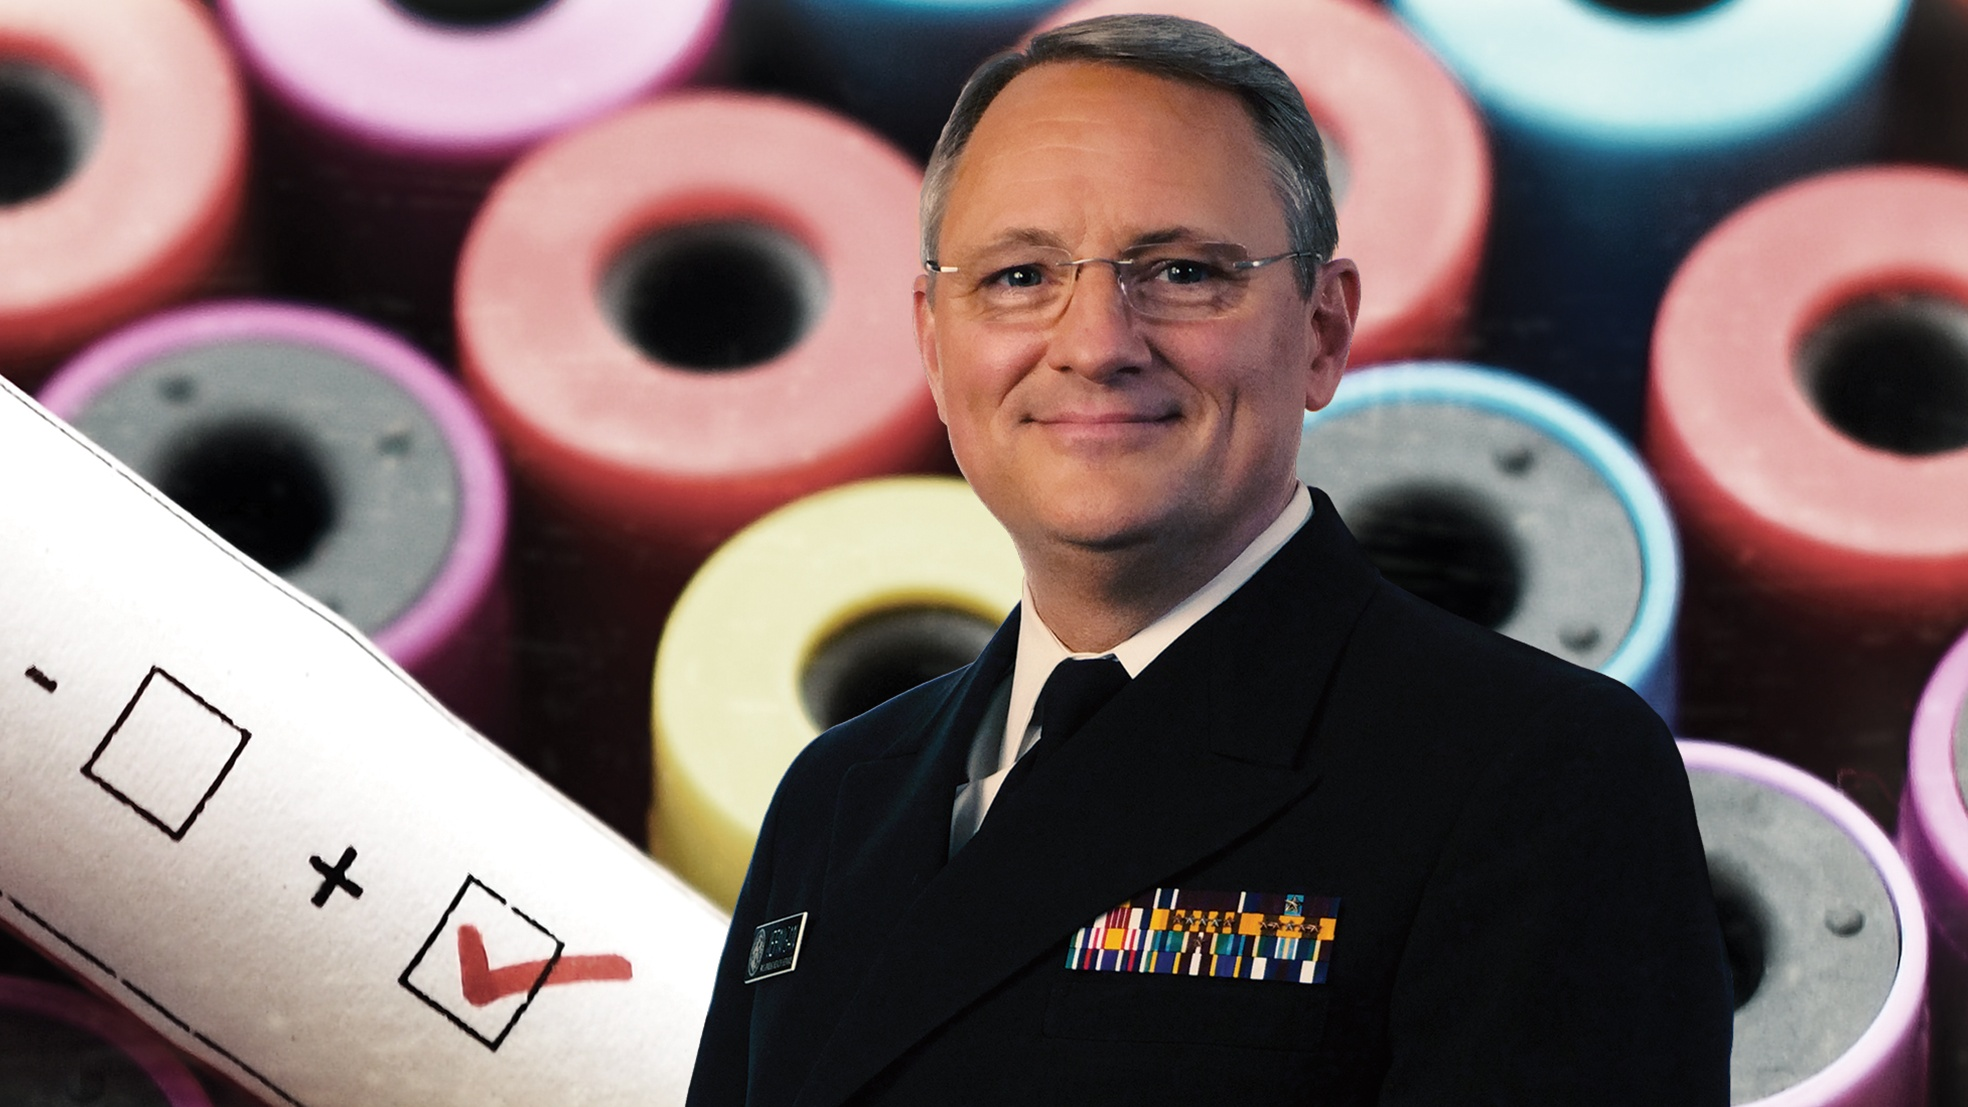 Dr. Daniel Jernigan, director of the Influenza Division of the National Center for Immunization and Respiratory Diseases and recipient of the Science and Environment Medal. (Braun Film and Video, Inc.)